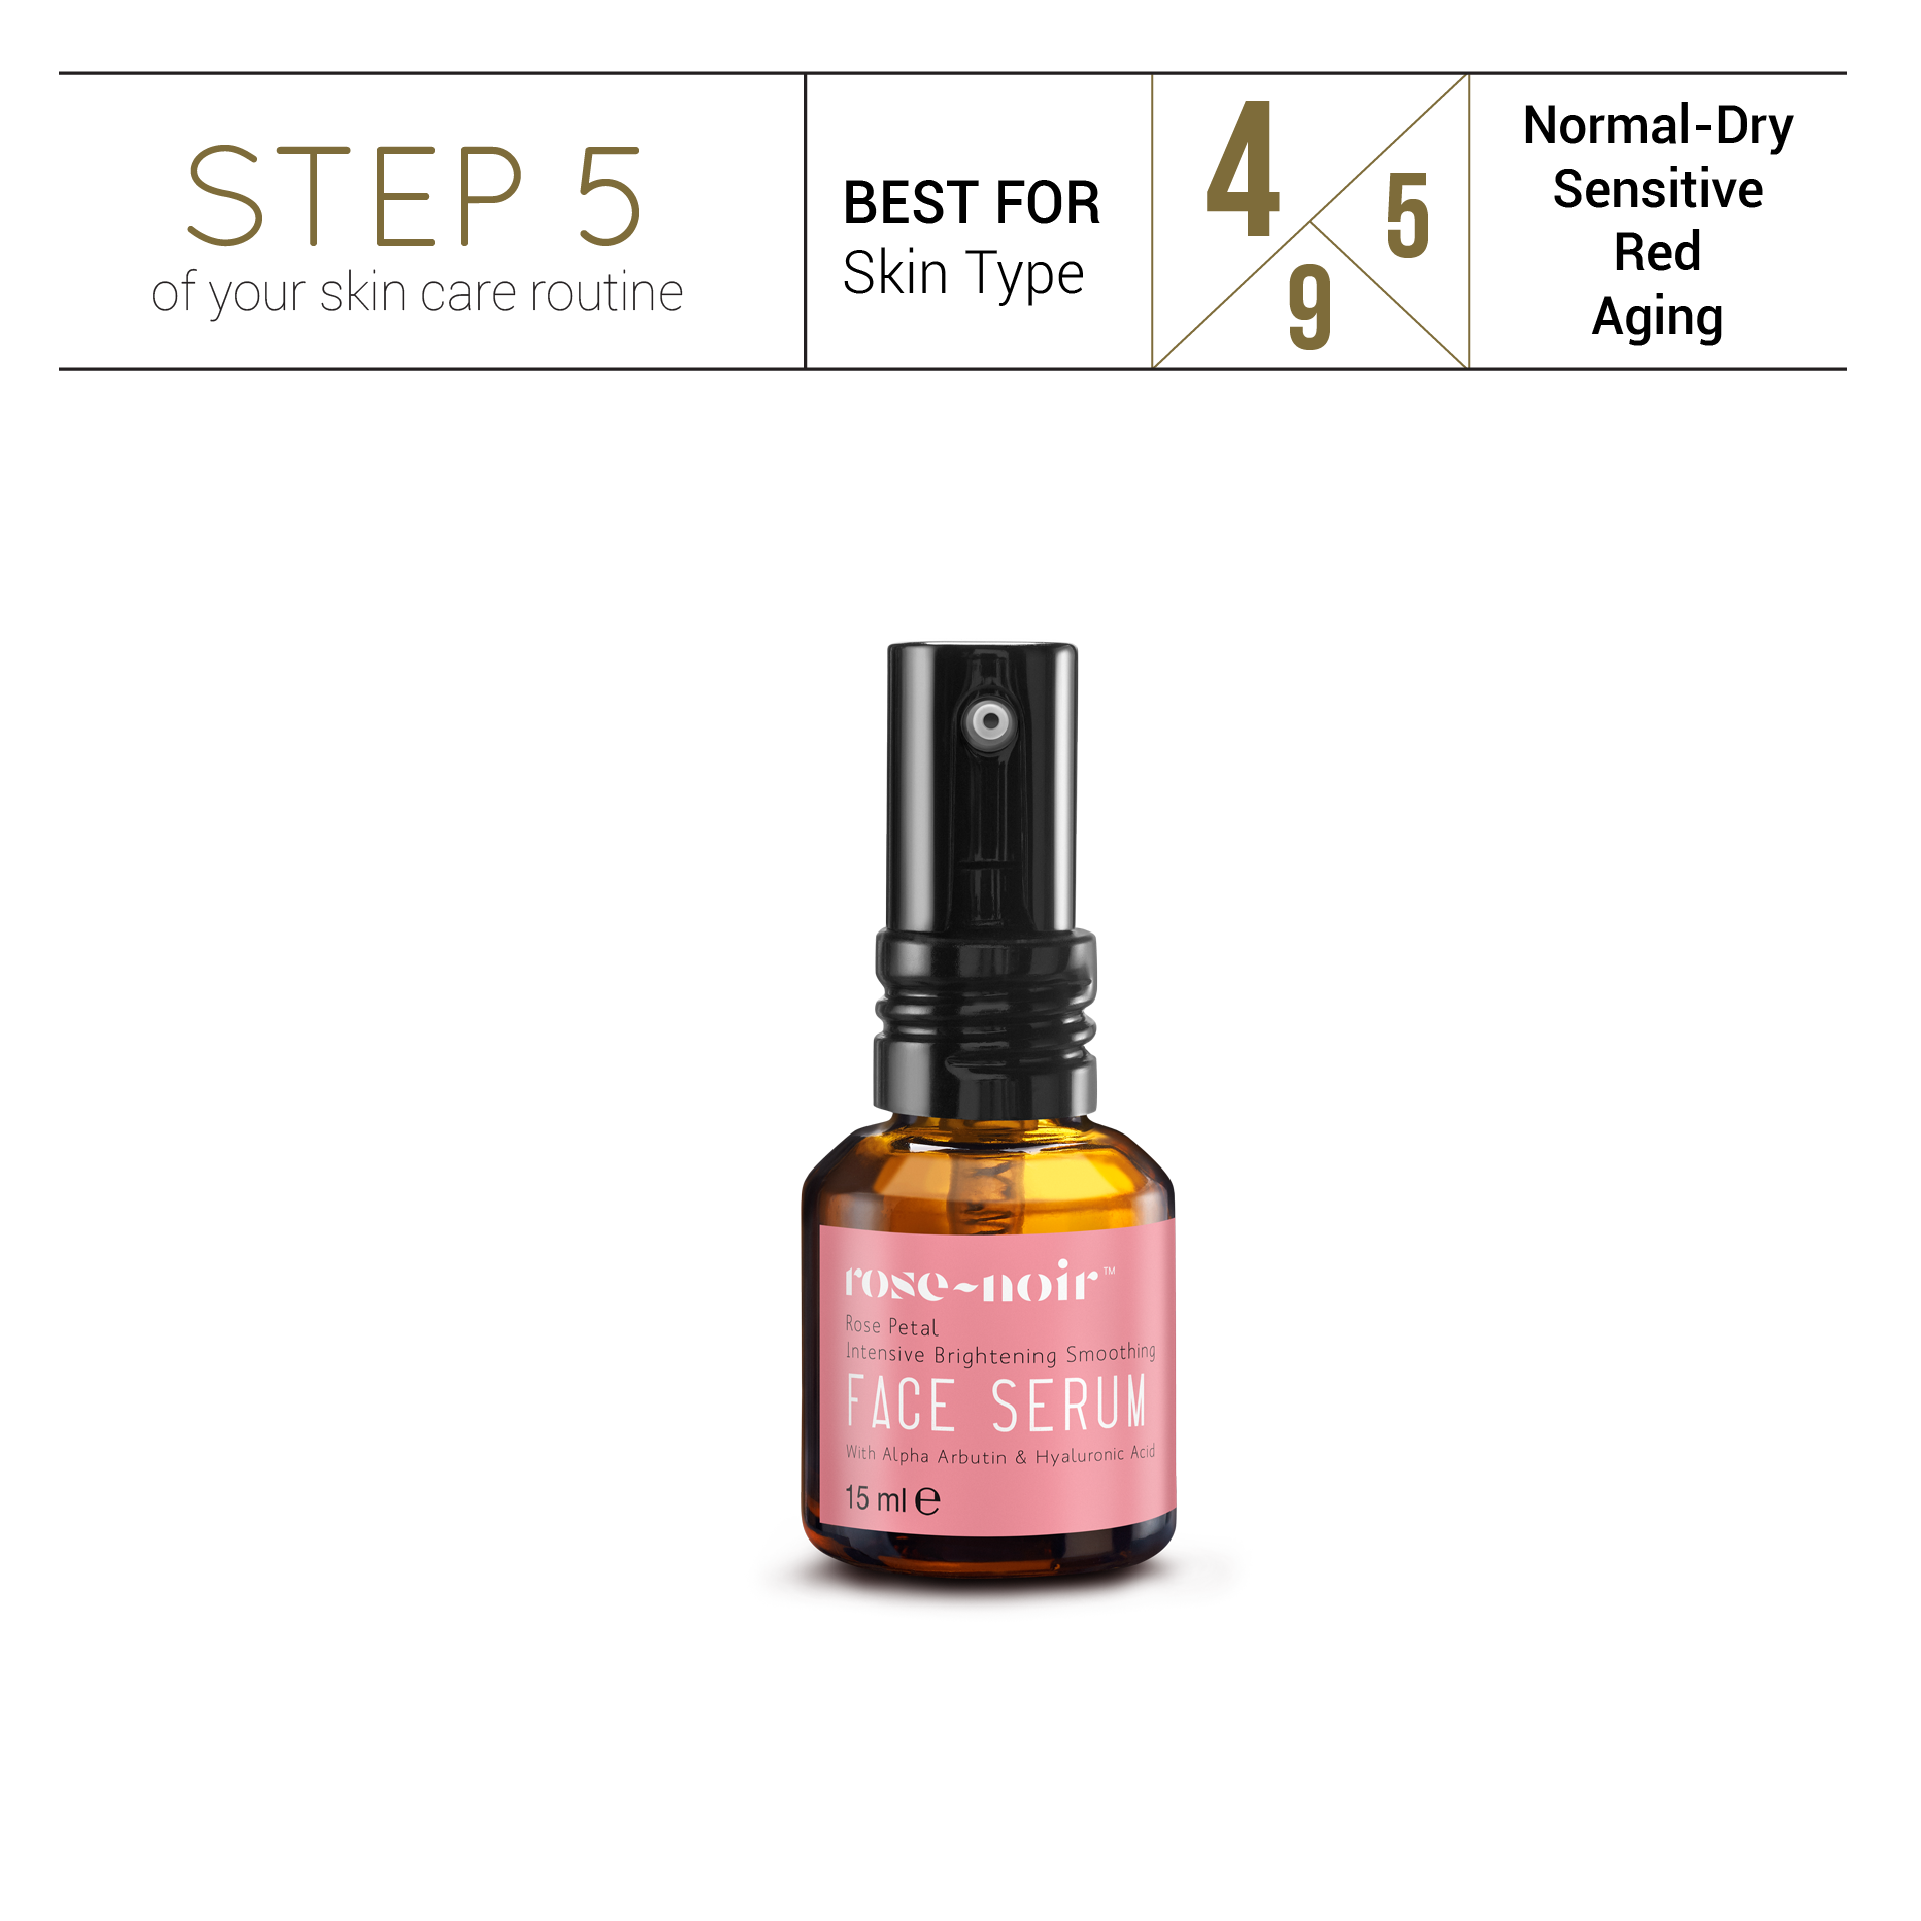 Rose Stem Cell Intensive Brightening Smoothing FACE SERUM - SRANN